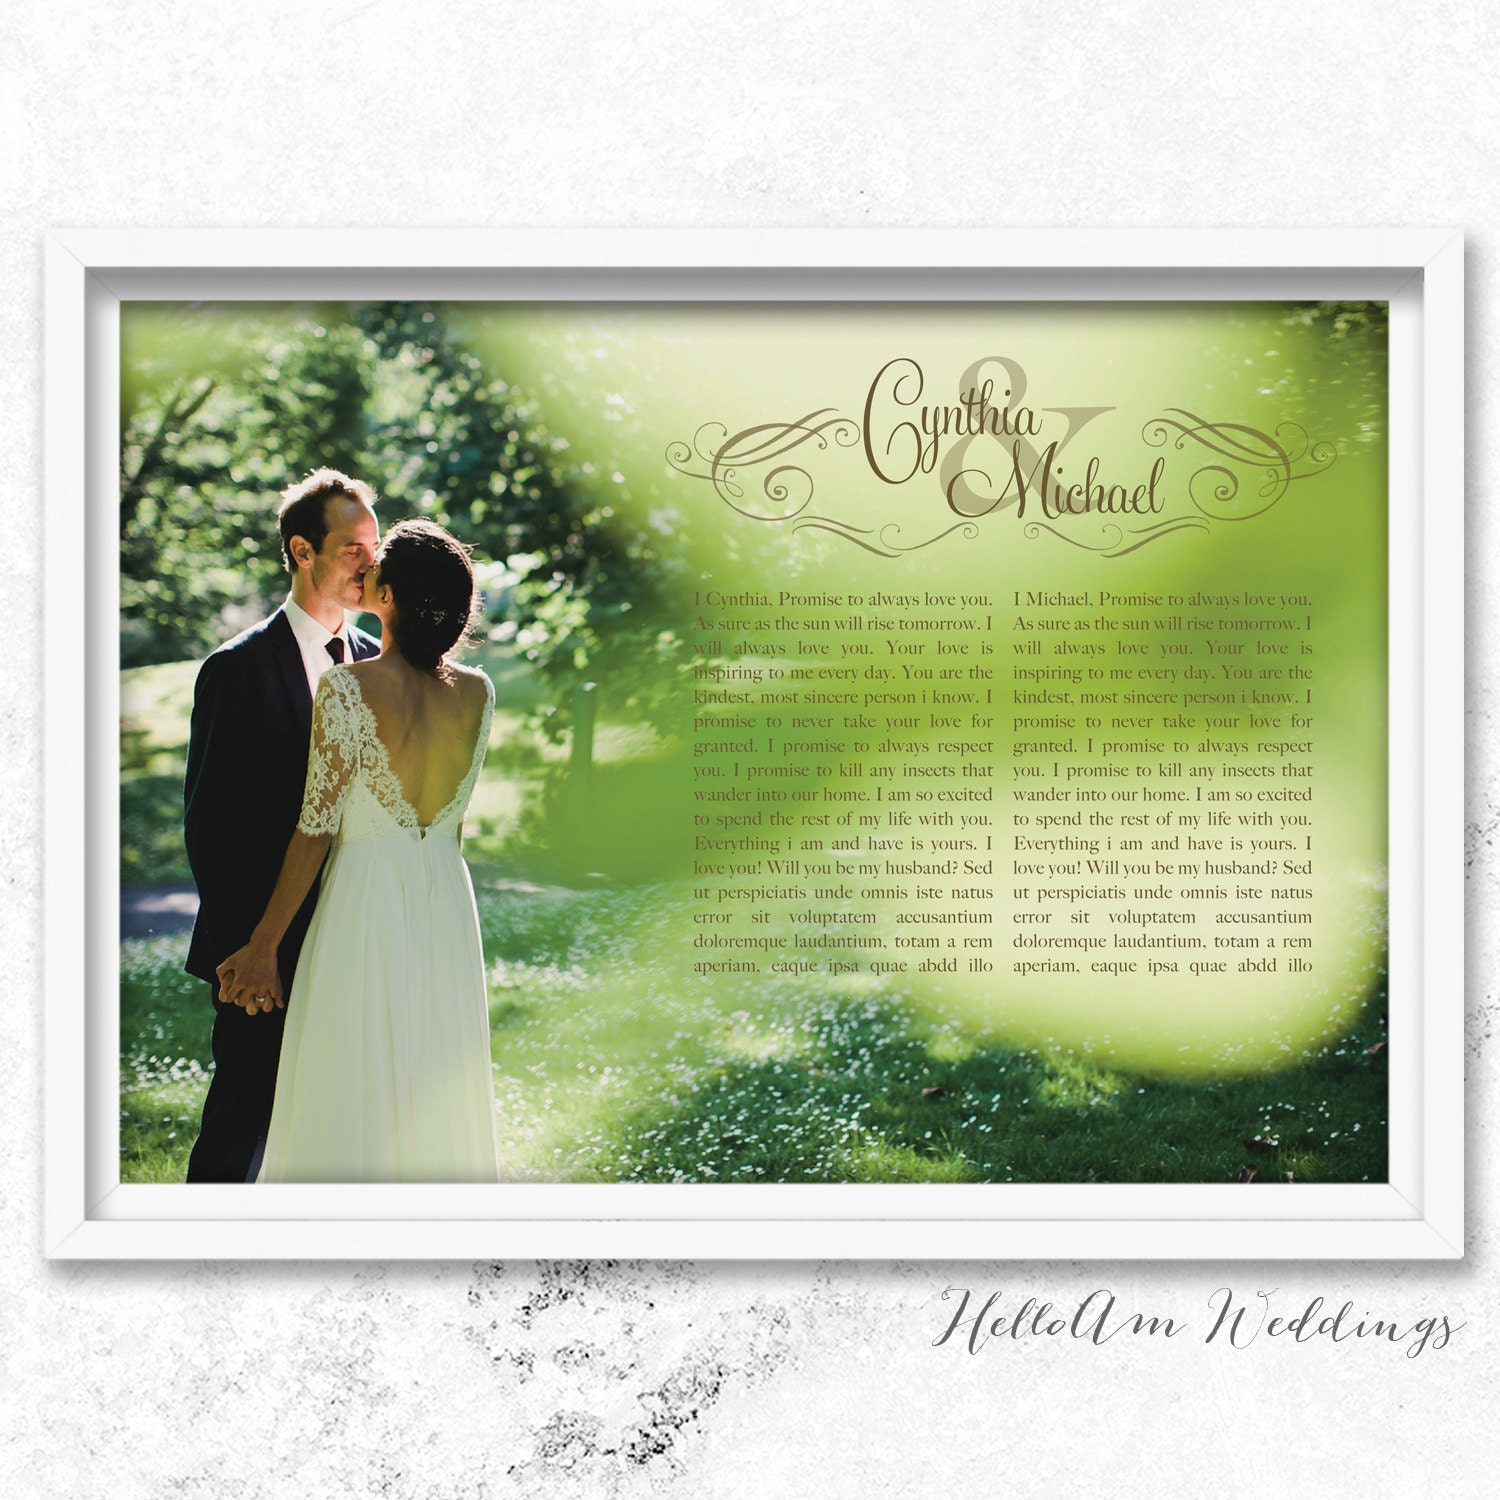 Wedding Gifts For Bride And Groom In Singapore : parent wedding gift wedding gift for bride and groom by HelloAm